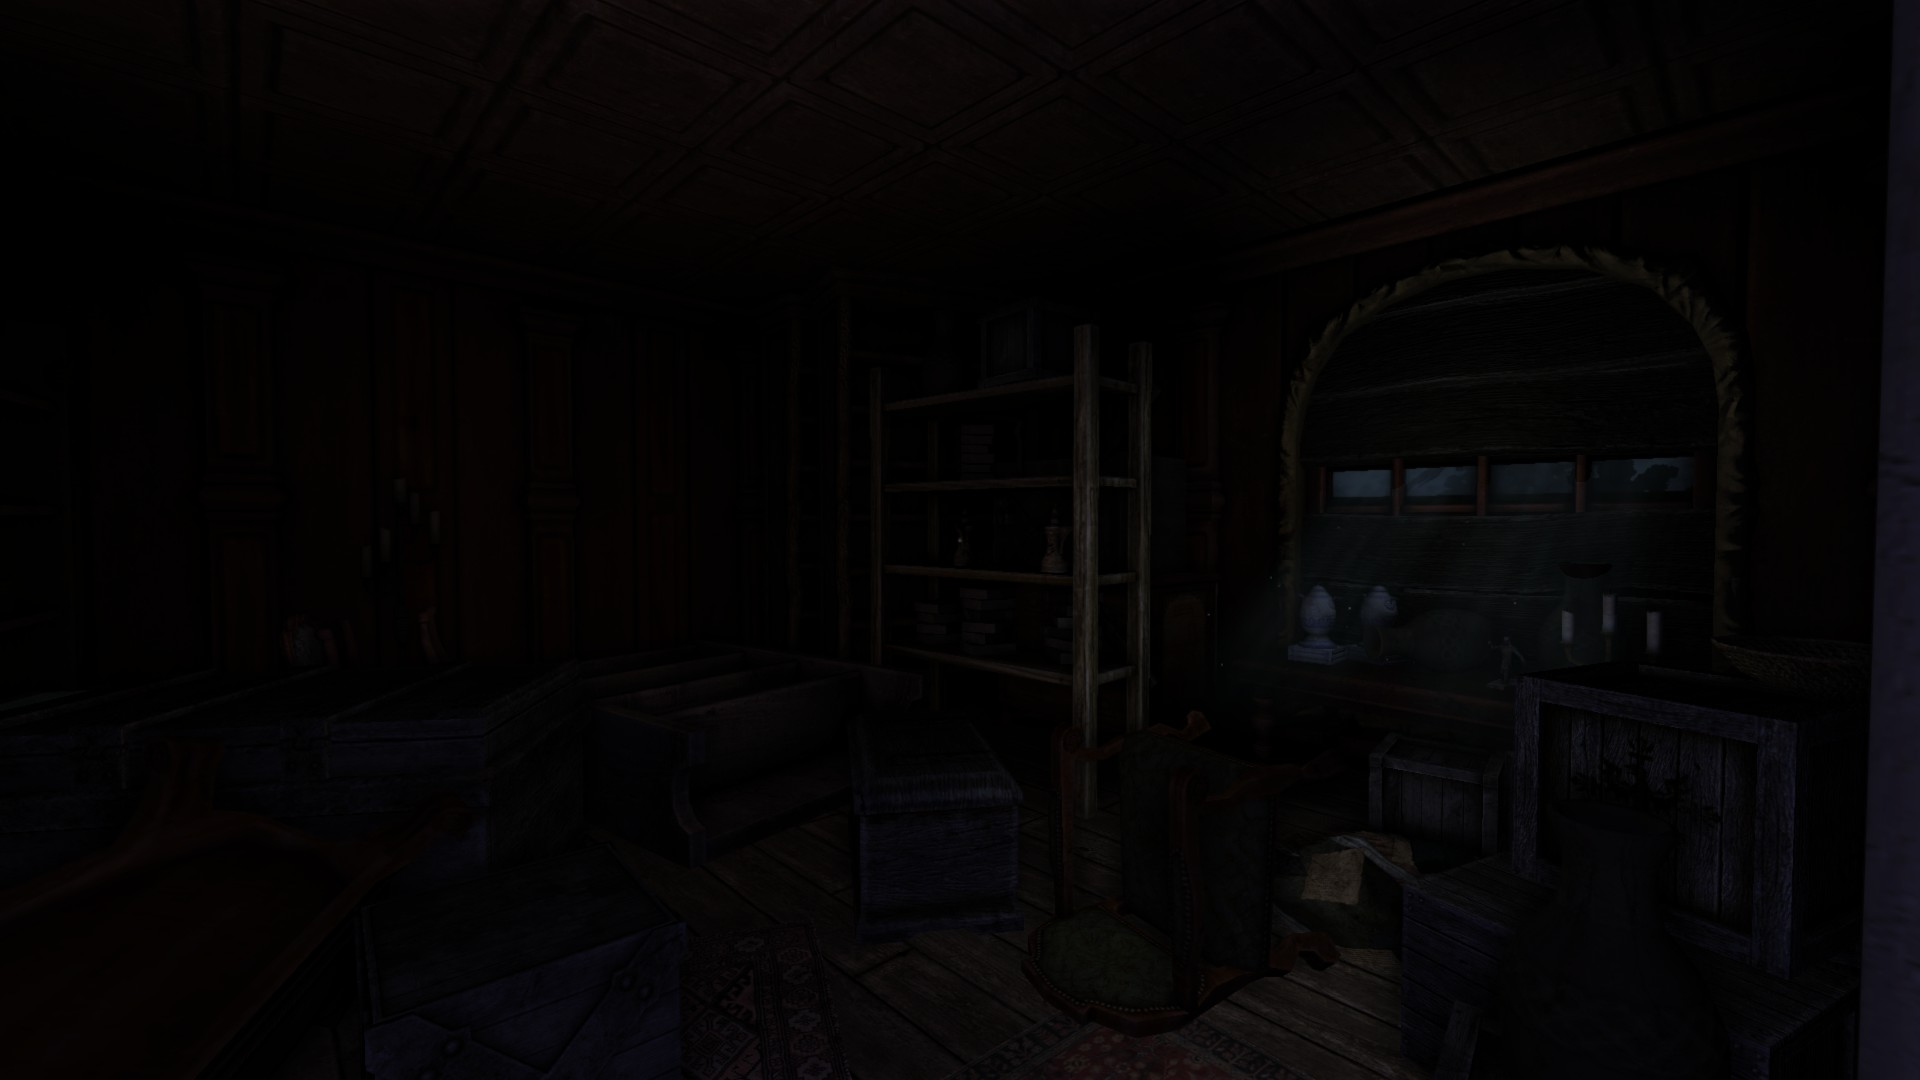 Dark Bedroom At Night Messy Room Image  Black Forest Castle V2 Mod For Amnesia The